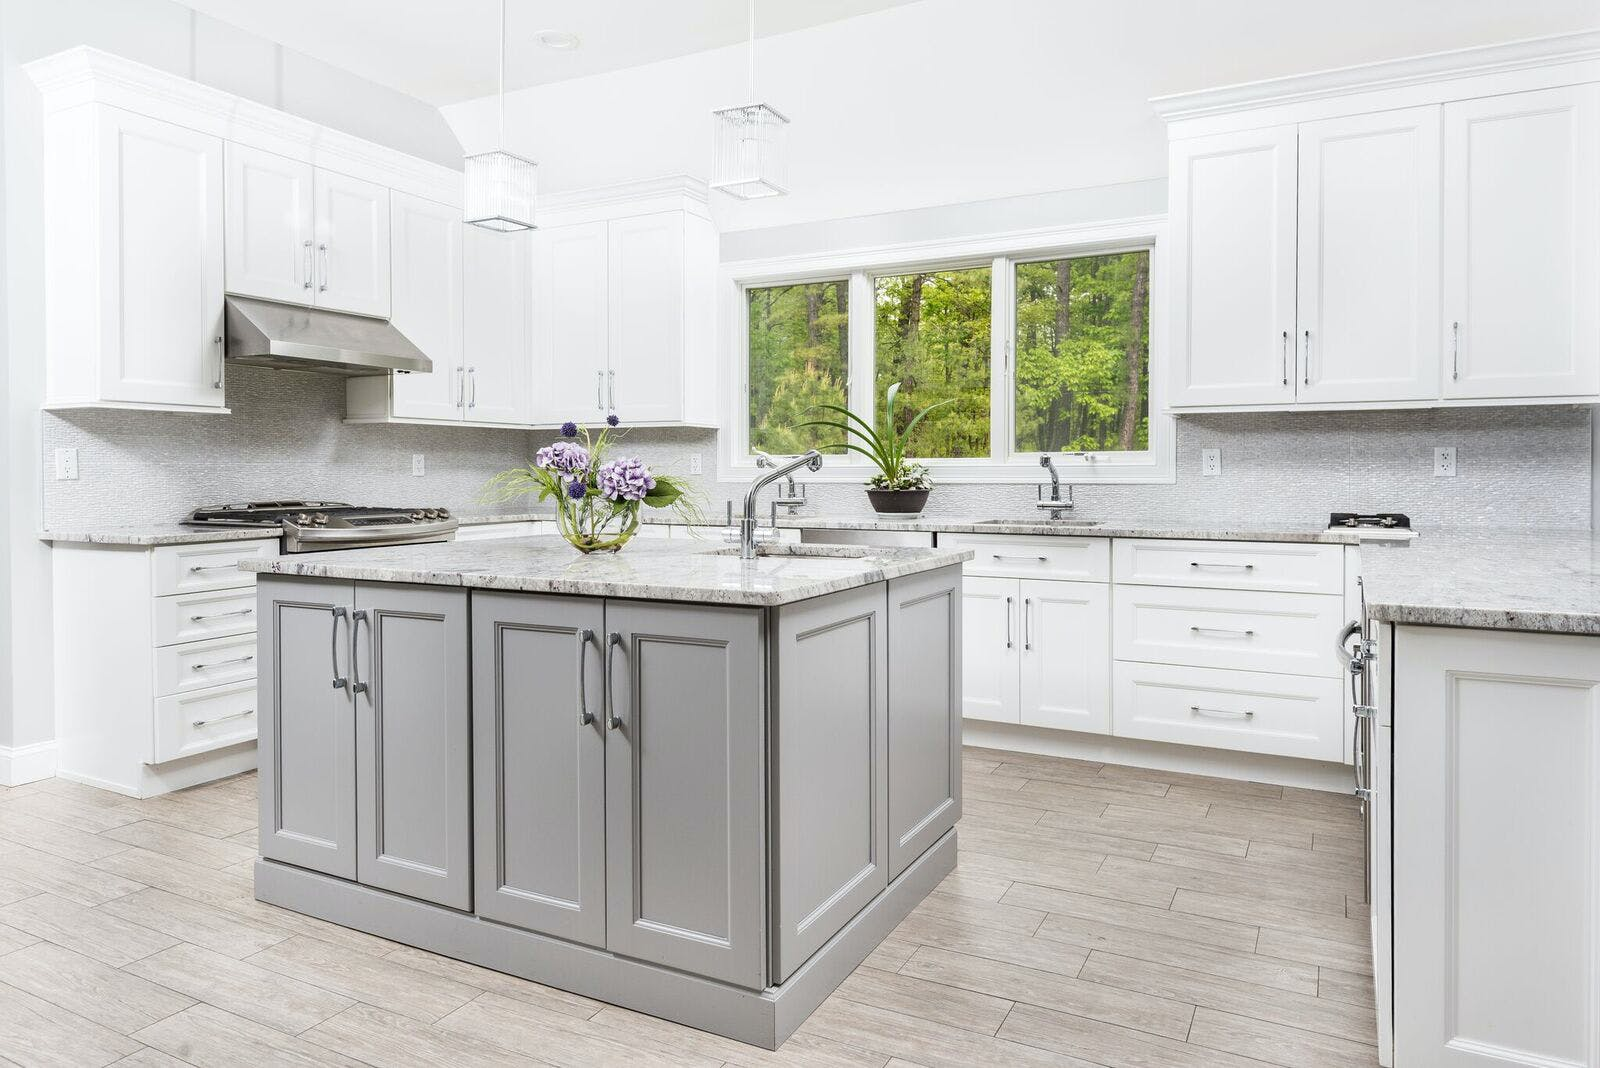 grey kitchens cabinets, white and grey kitchen